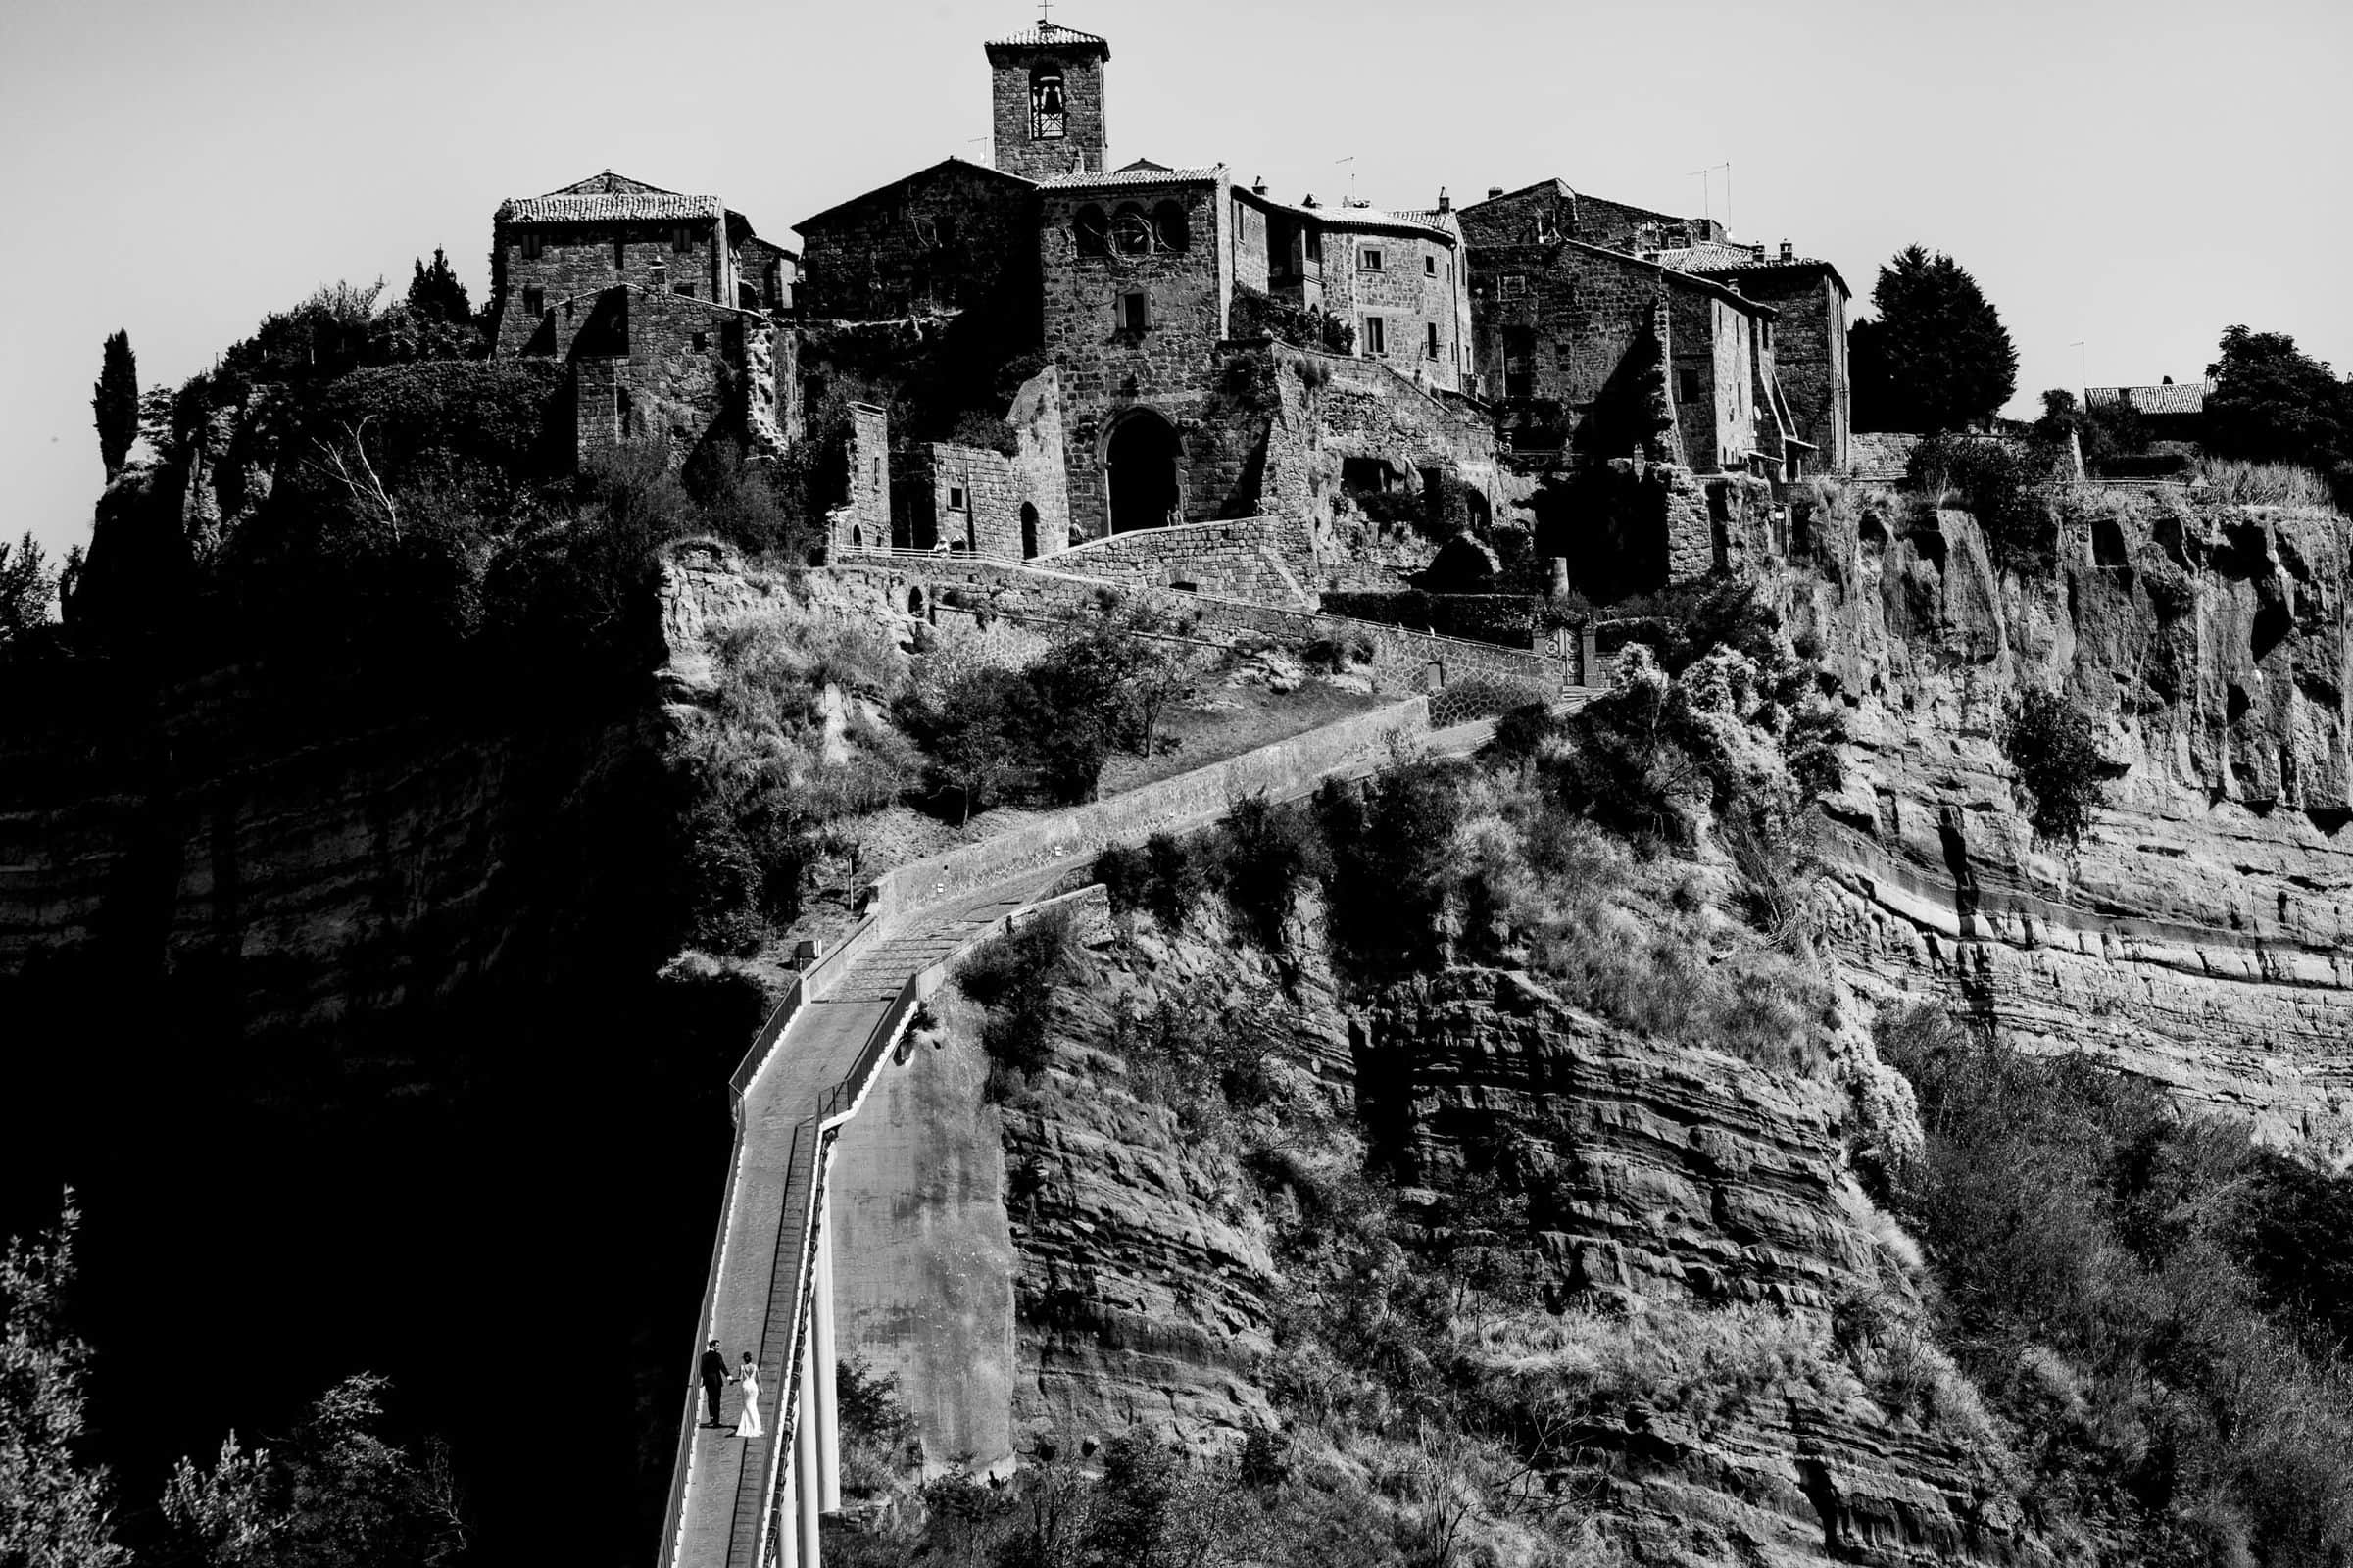 Bride and Groom walking up the trail into civita di bagnoregio in Italy for their wedding